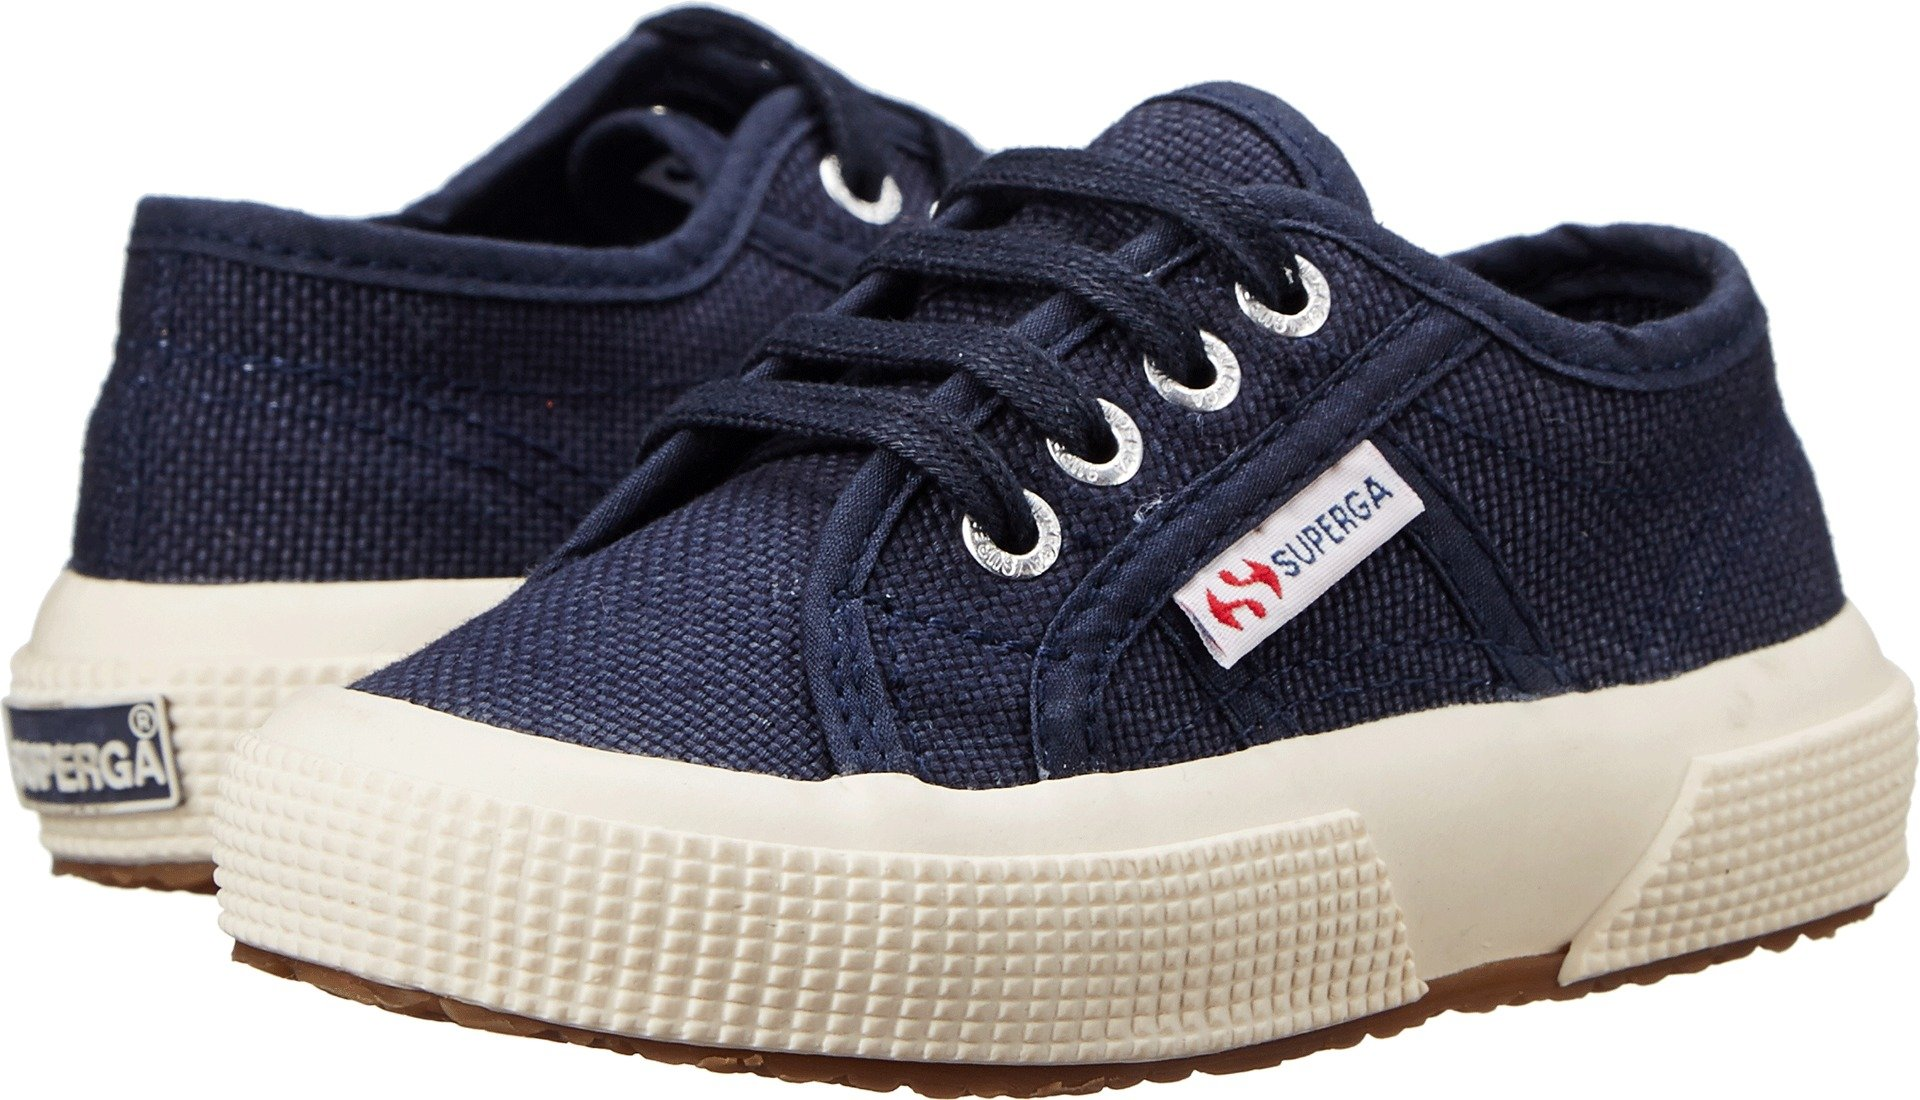 Superga Boys' 2750 JCOT - K, Navy, 27 EU(10.5 M US Little Kid)